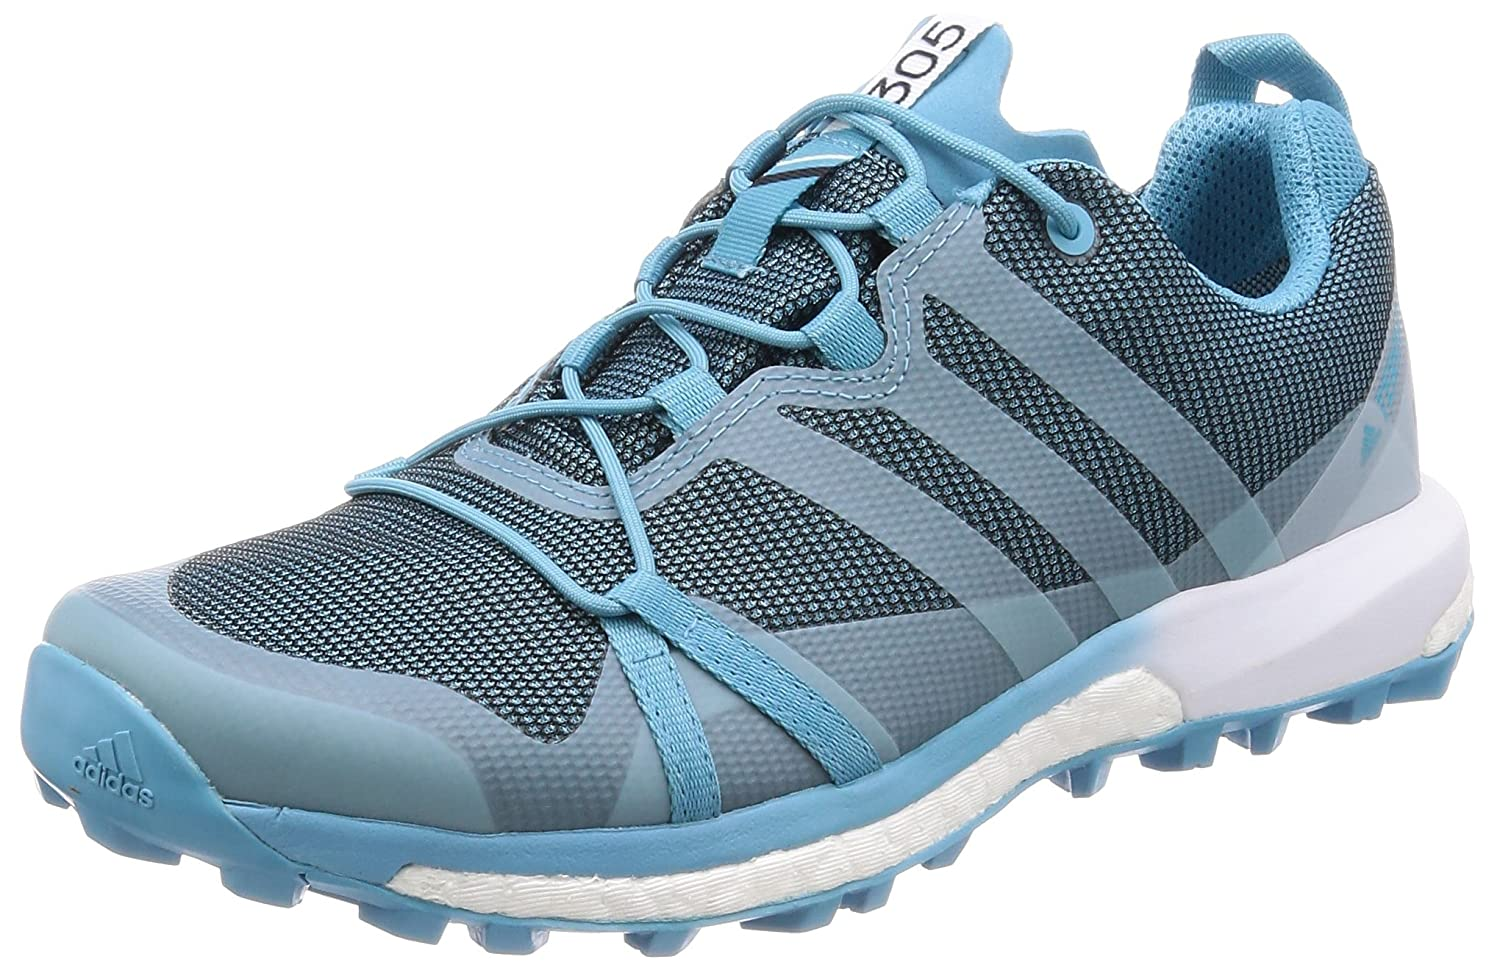 402ede837103 Adidas Terrex Agravic Gore-Tex Women s Trail Running Shoes - 6.5   Amazon.ca  Sports   Outdoors